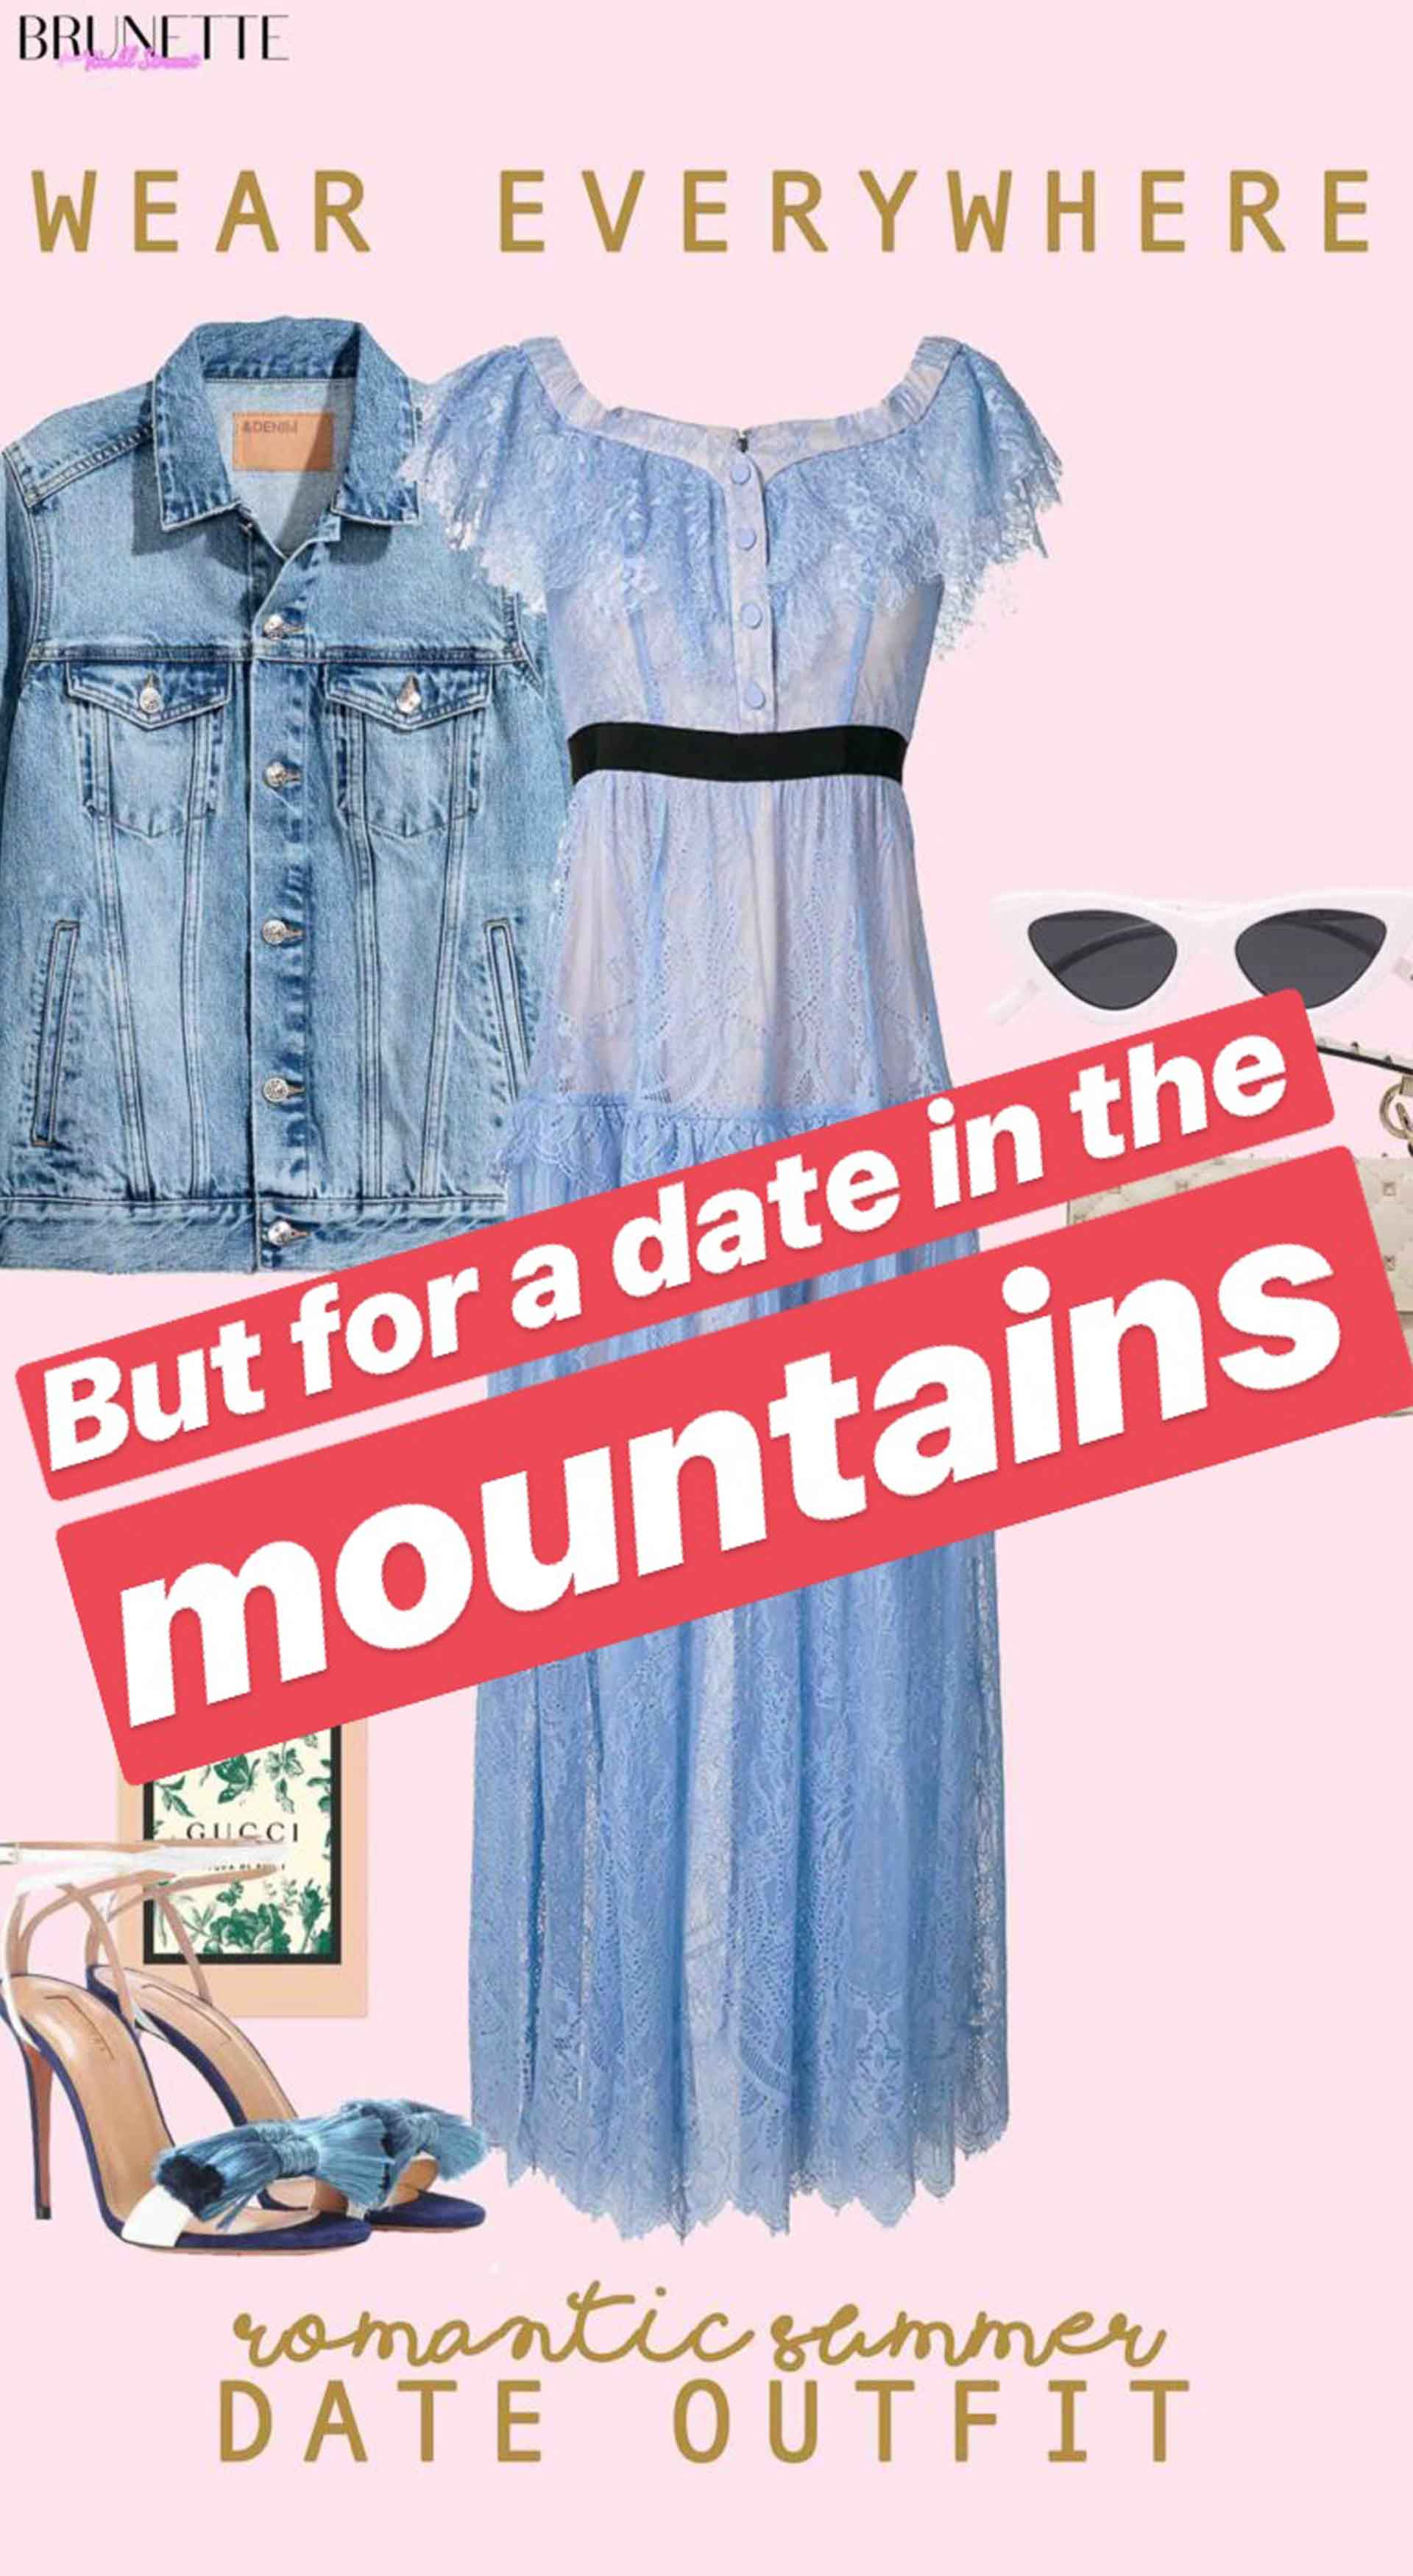 wear everywhere romantic summer date outfit but for a date in the mountains